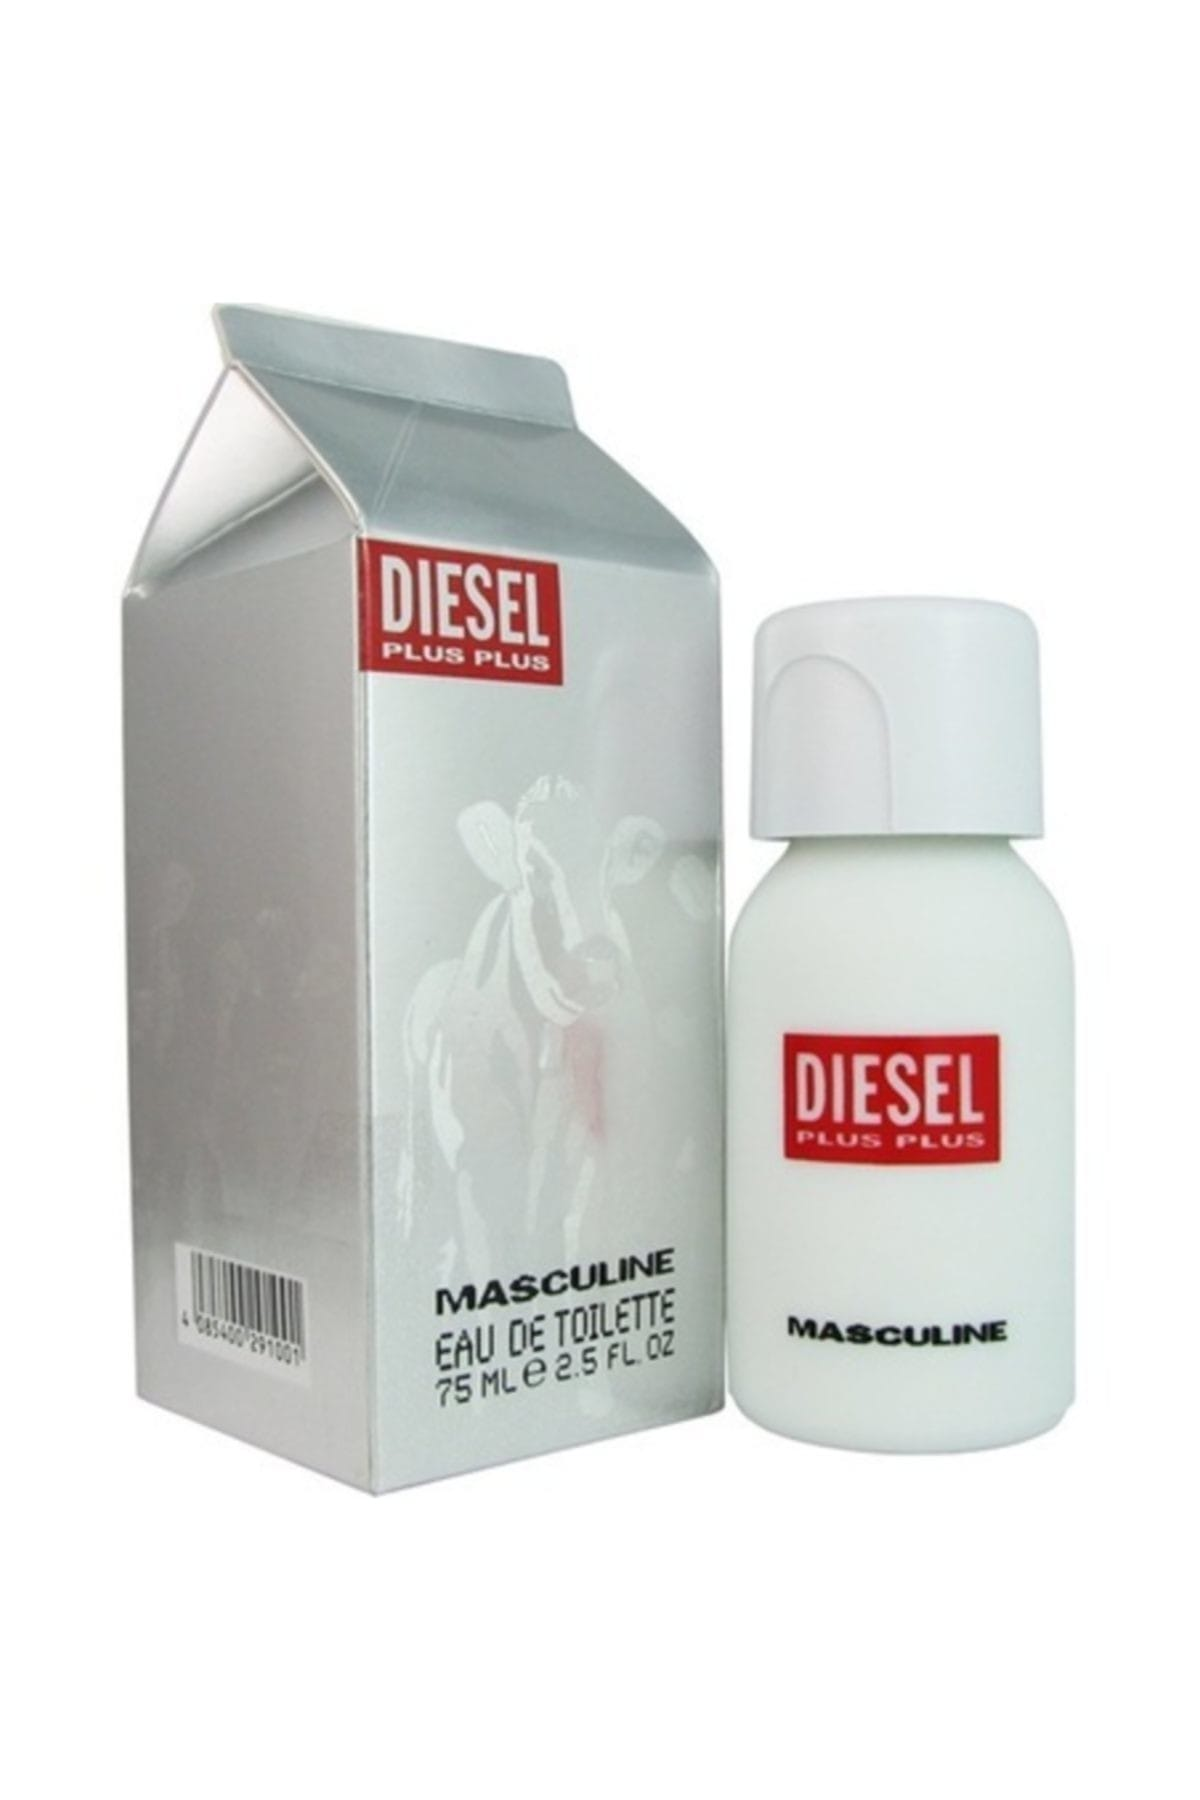 Diesel Plus Plus Eau De Toilette Spray 75ml